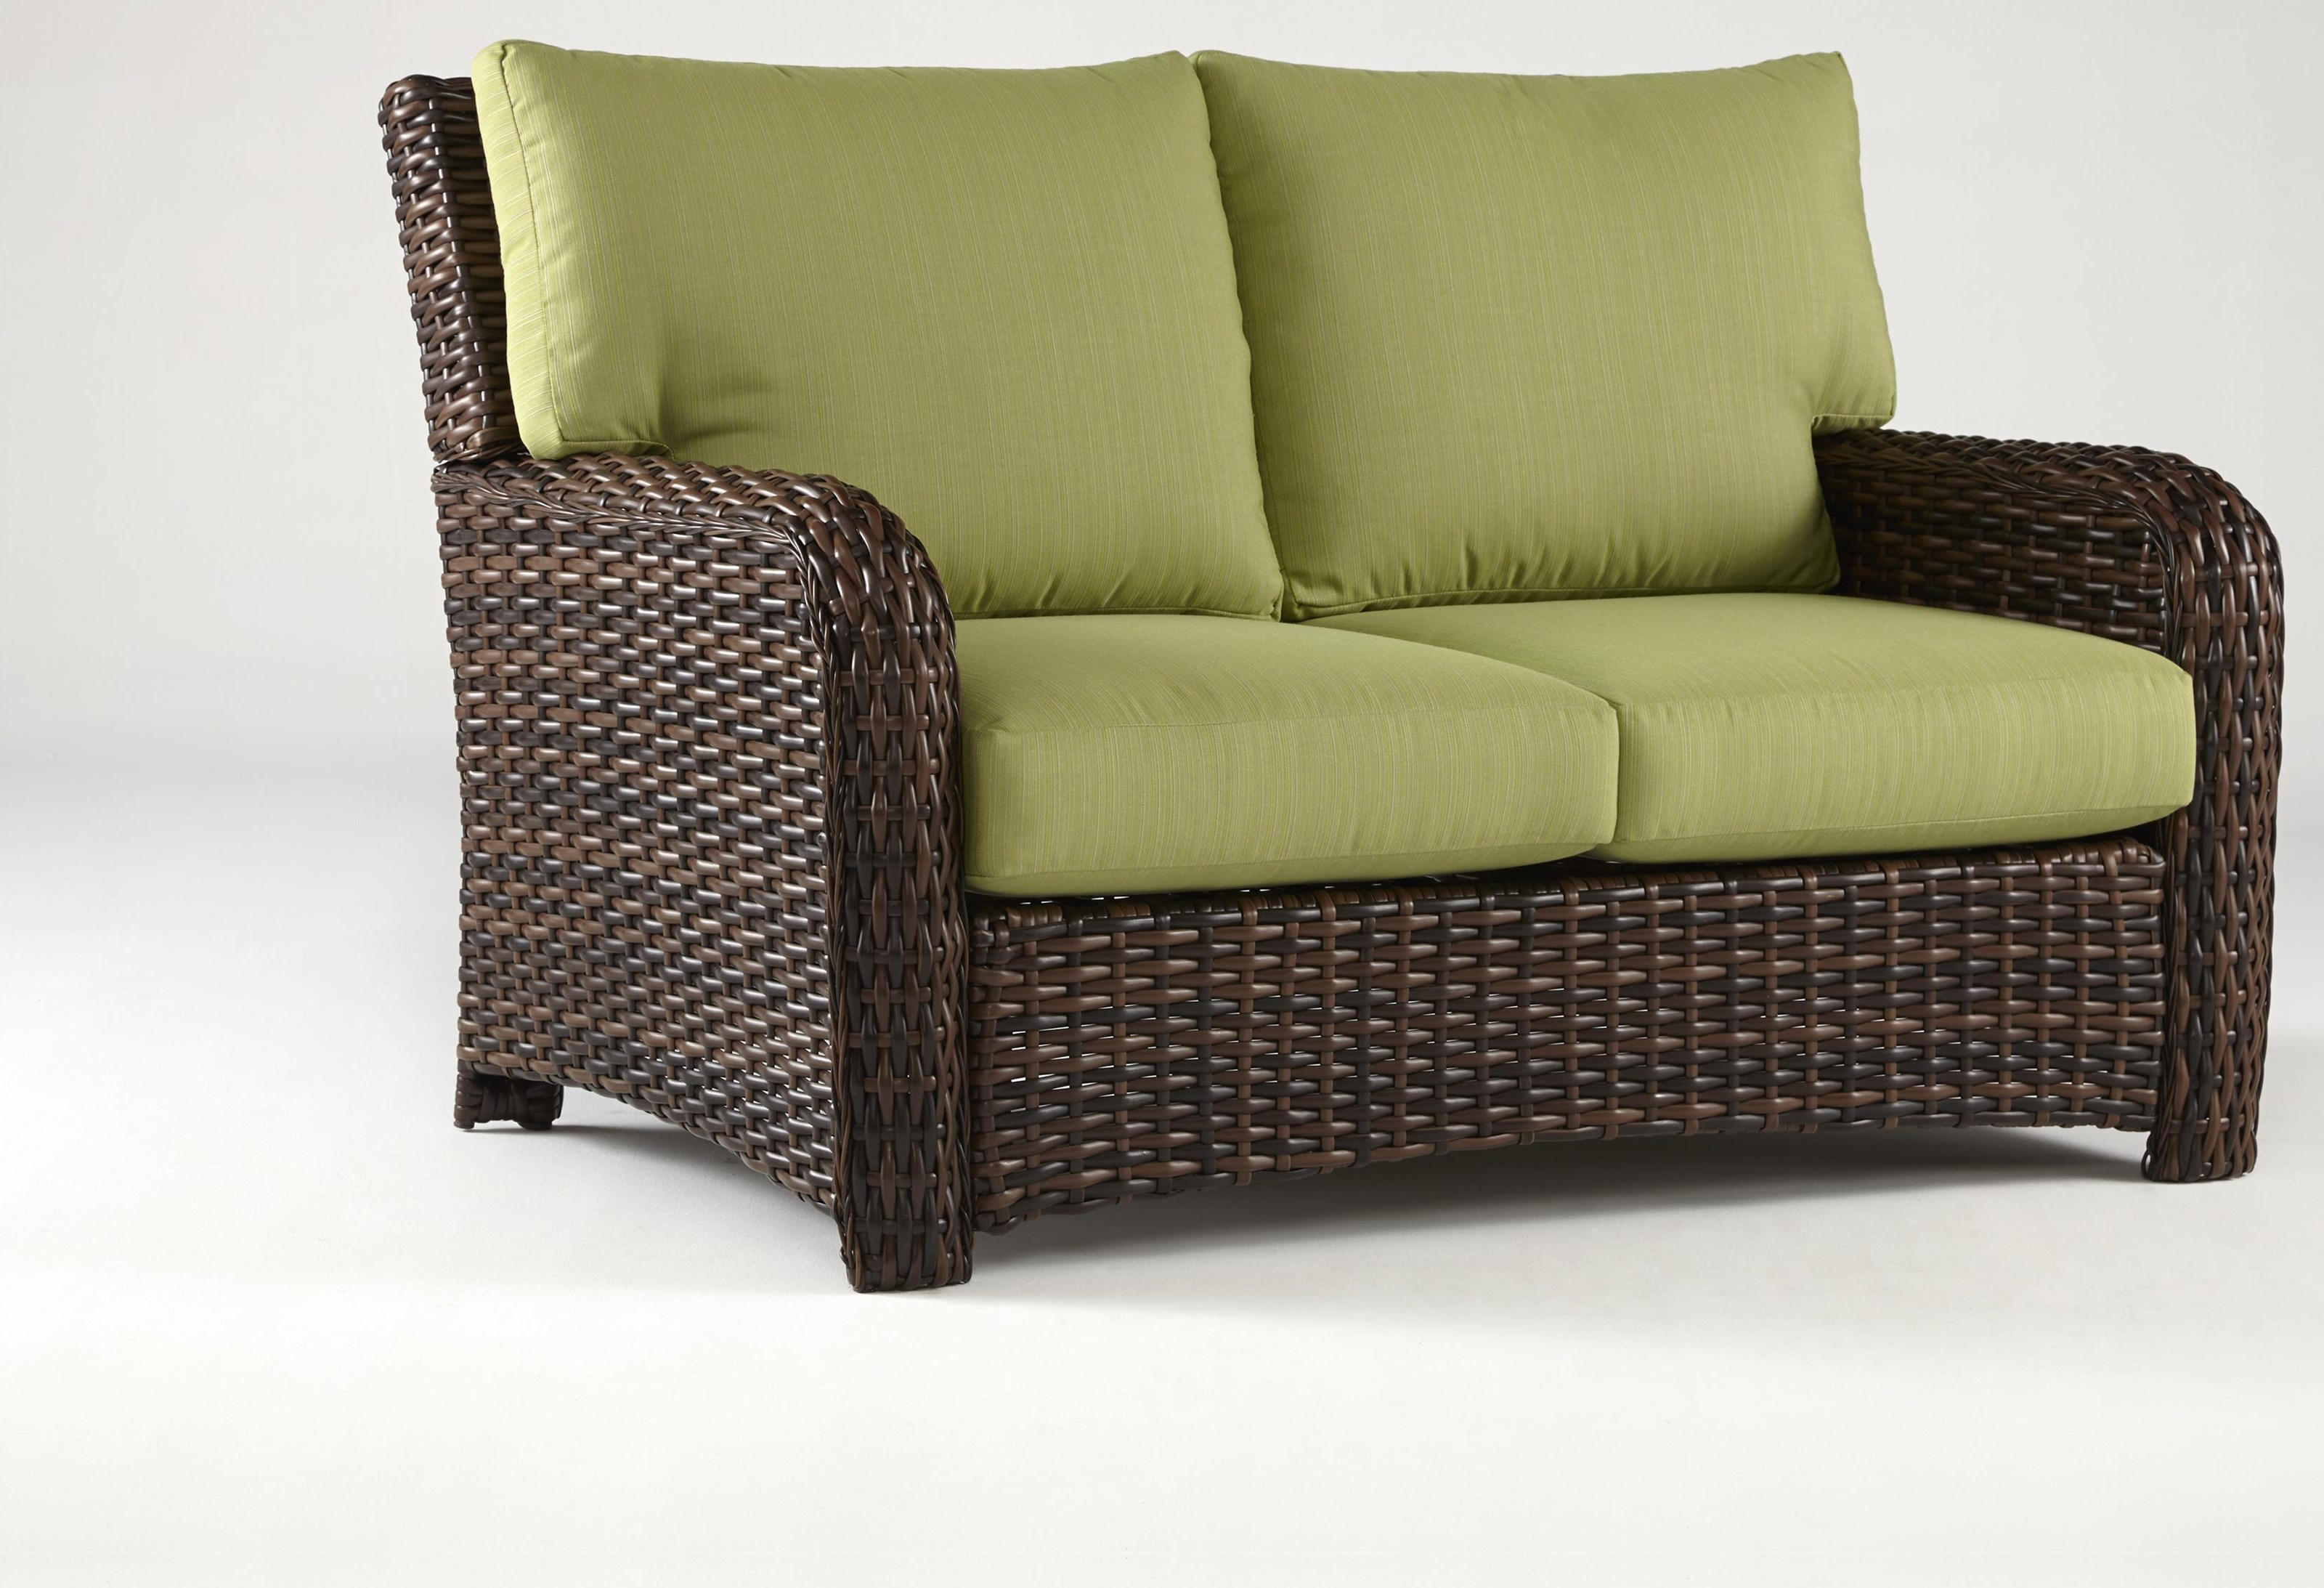 Saint Tropez Loveseat with Luxterior Cushion by South Sea Rattan & Wicker at Johnny Janosik